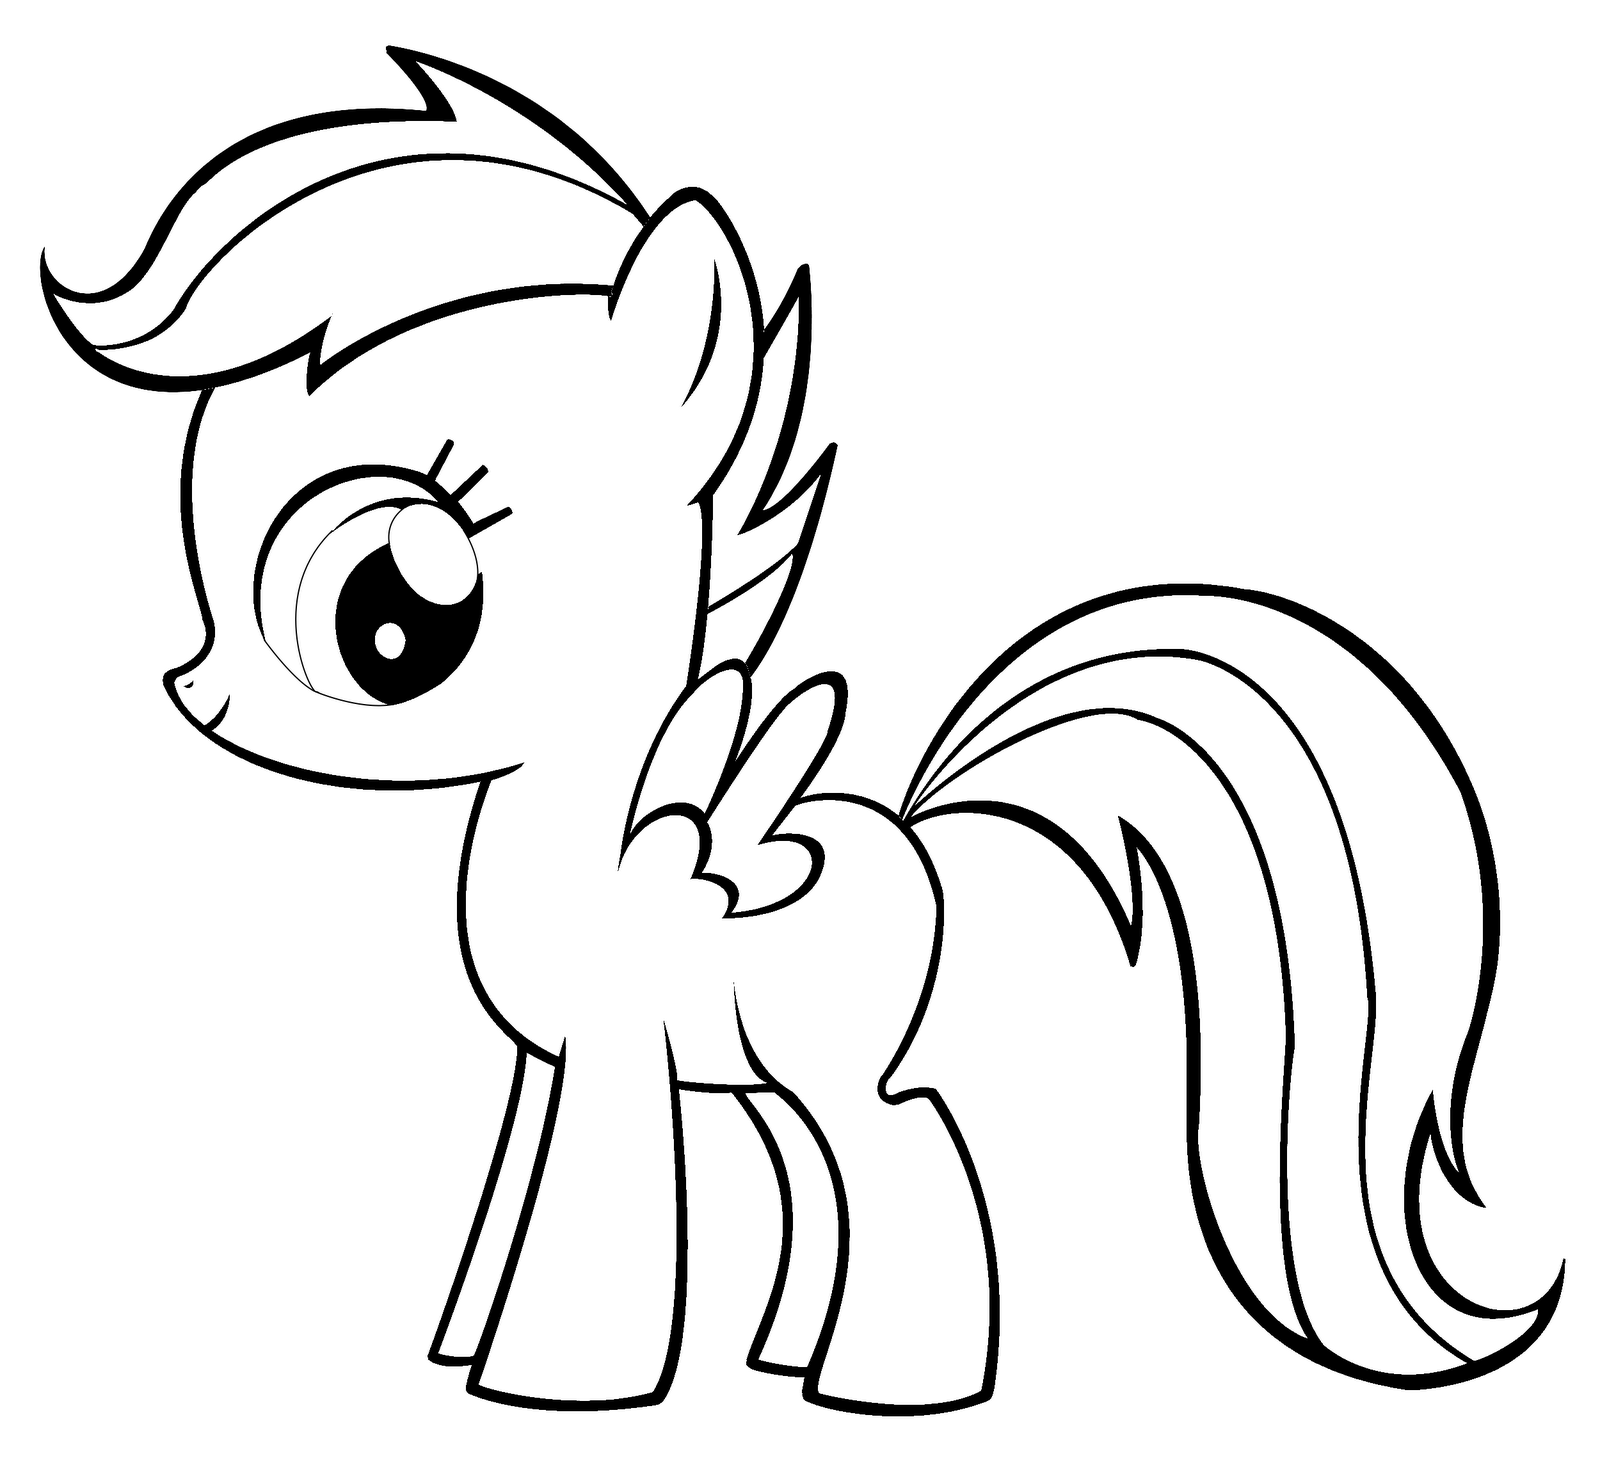 My Little Pony Coloring Pages Cutie Mark : Coloring fun applebloom scootaloo